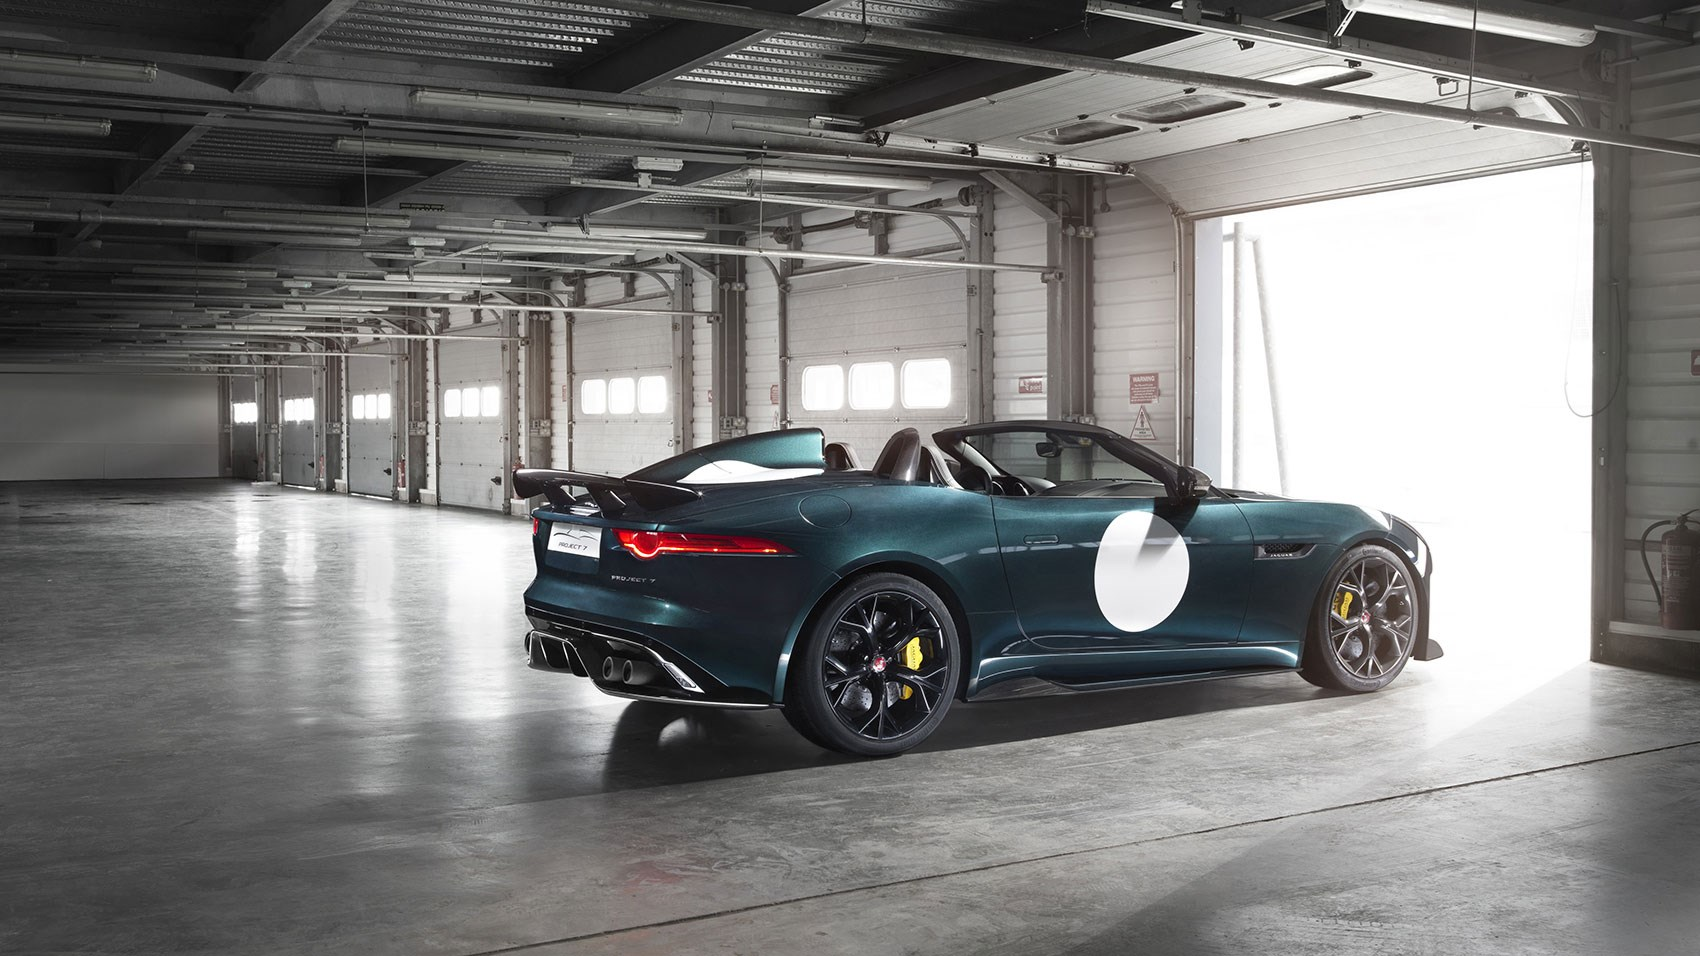 Awd Cars For Sale >> Jaguar F-type Project 7 (2015) review | CAR Magazine